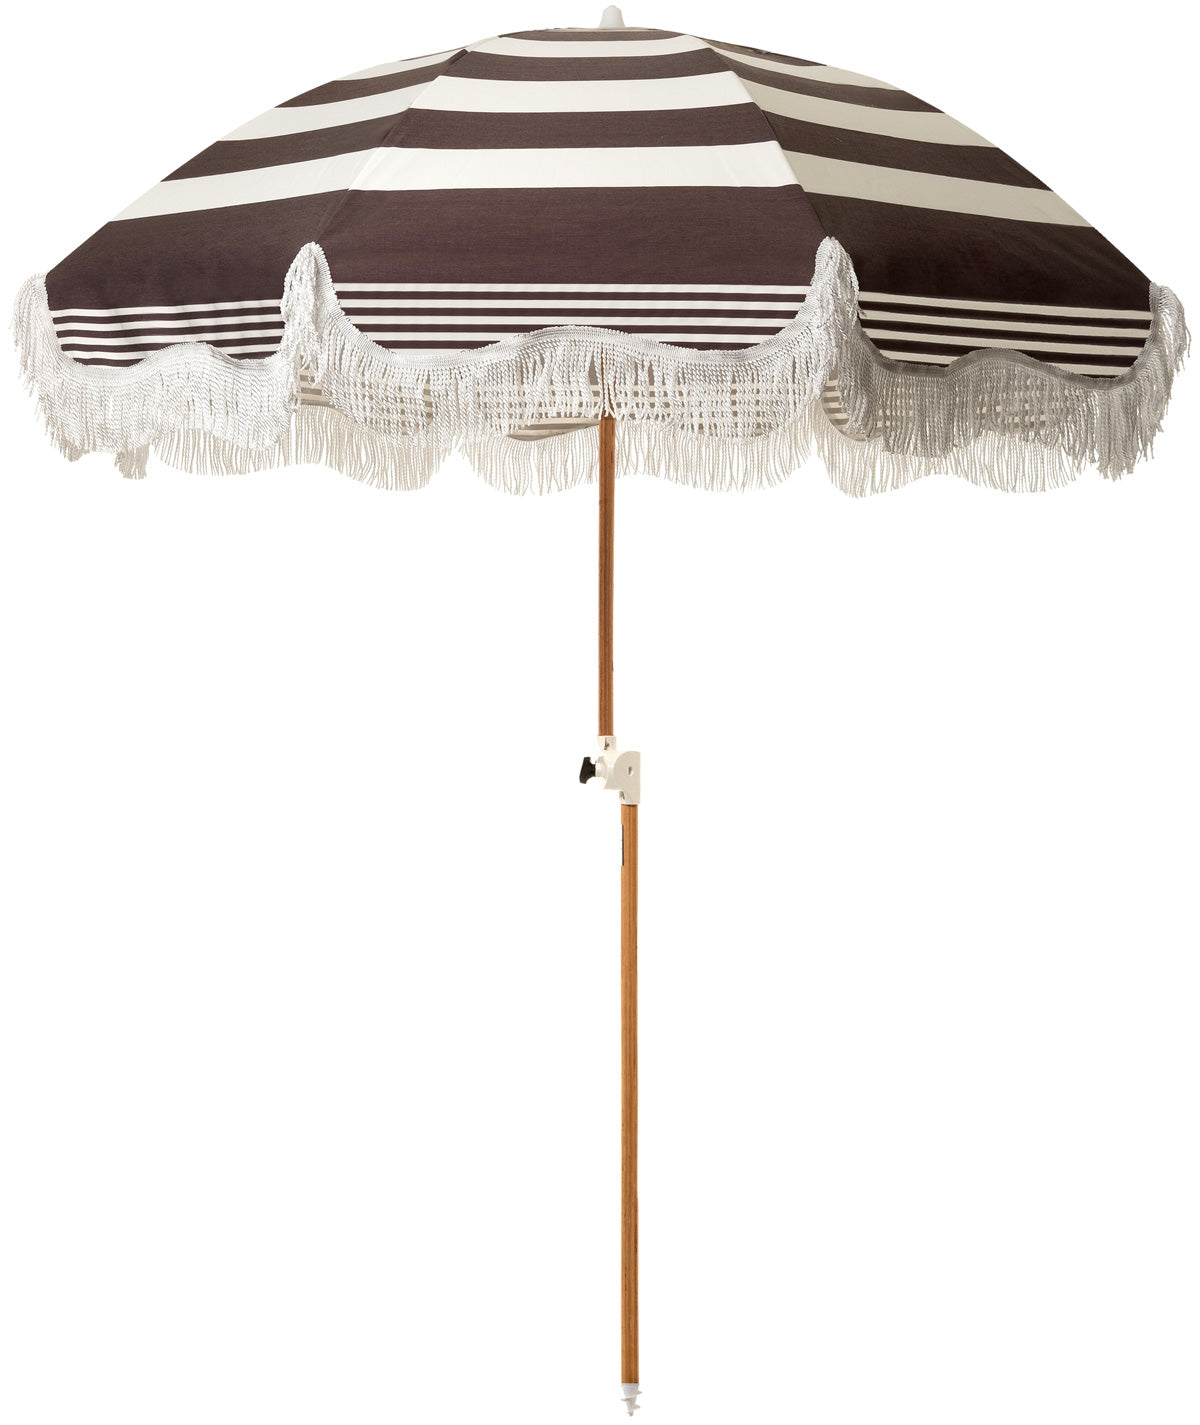 Black Riviera Stripe Holiday Beach Umbrella - Business & Pleasure Co